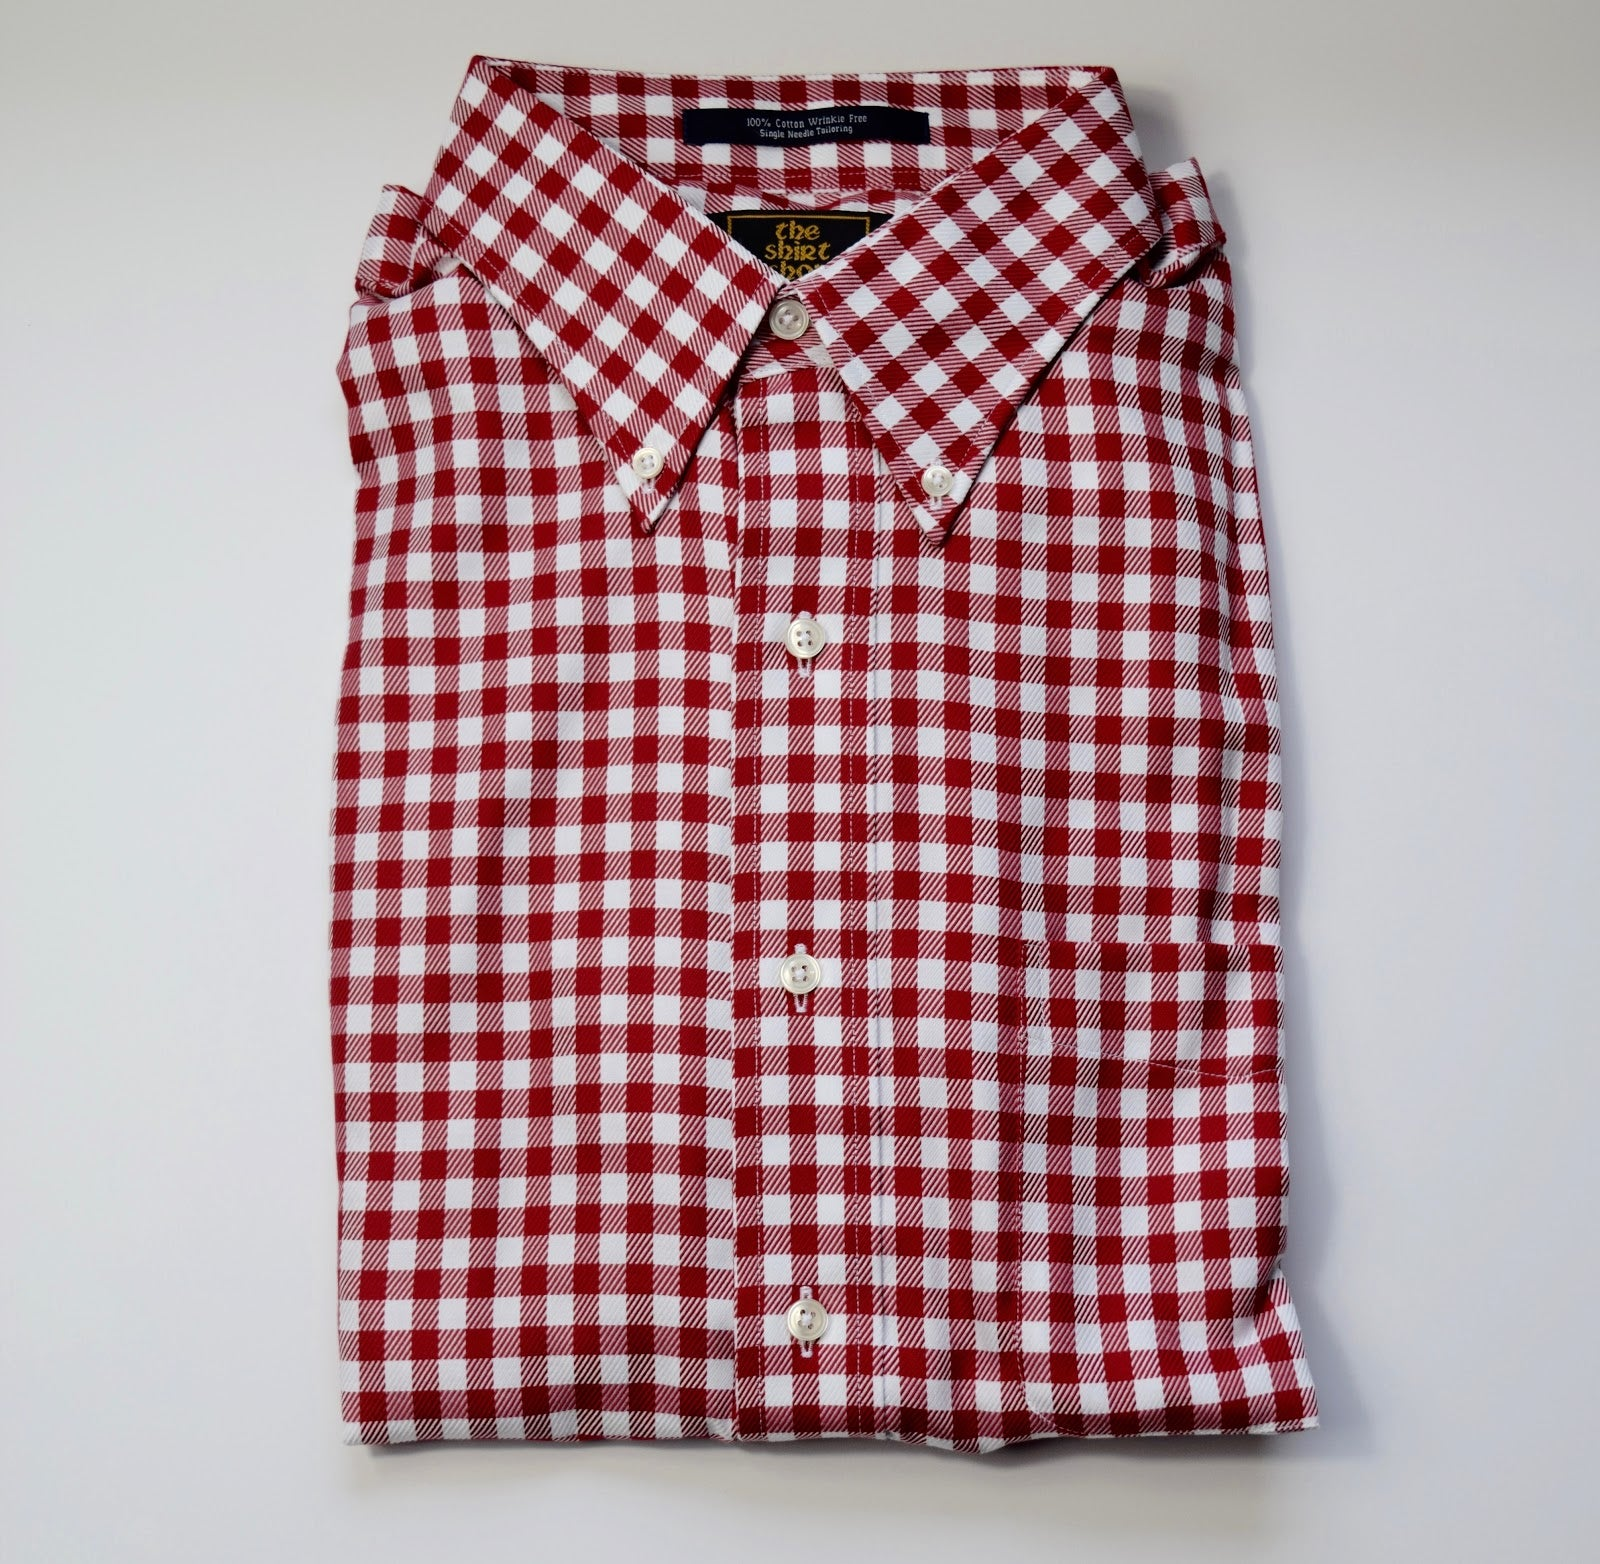 The Shirt Shop Wrinkle Free Jumbo Check - Red